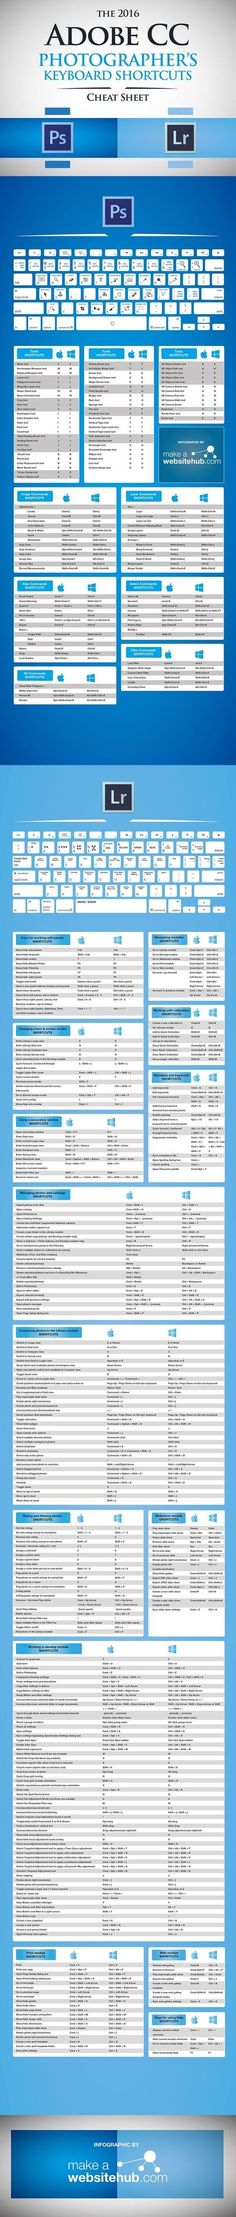 The Ultimate Adobe CC Photoshop and Lightroom Shortcut Cheat Sheet